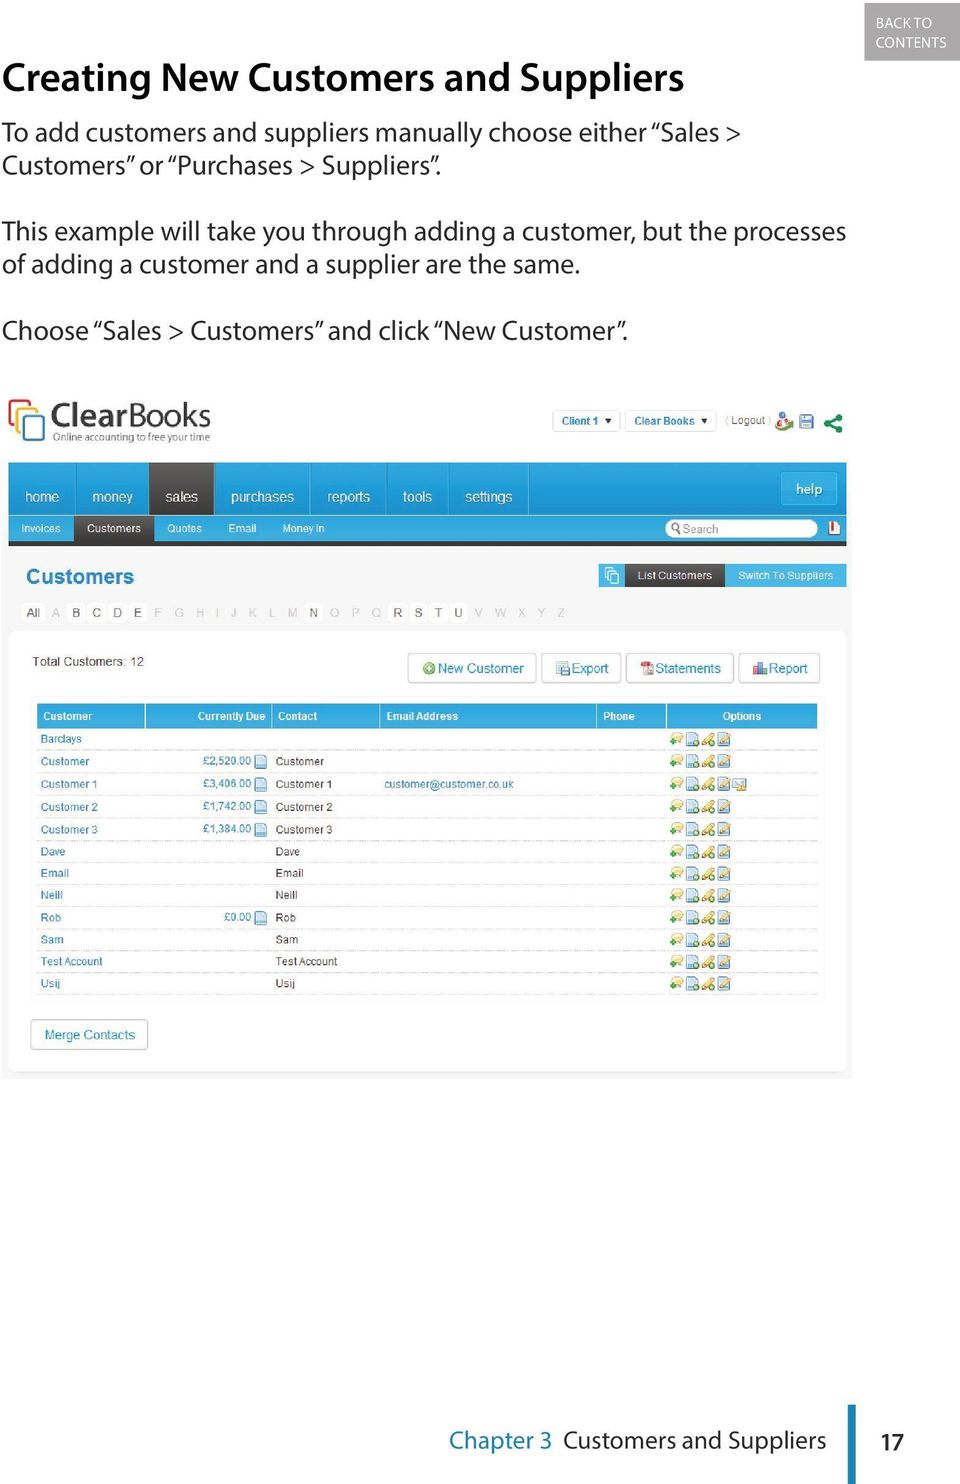 BACK TO CONTENTS This example will take you through adding a customer, but the processes